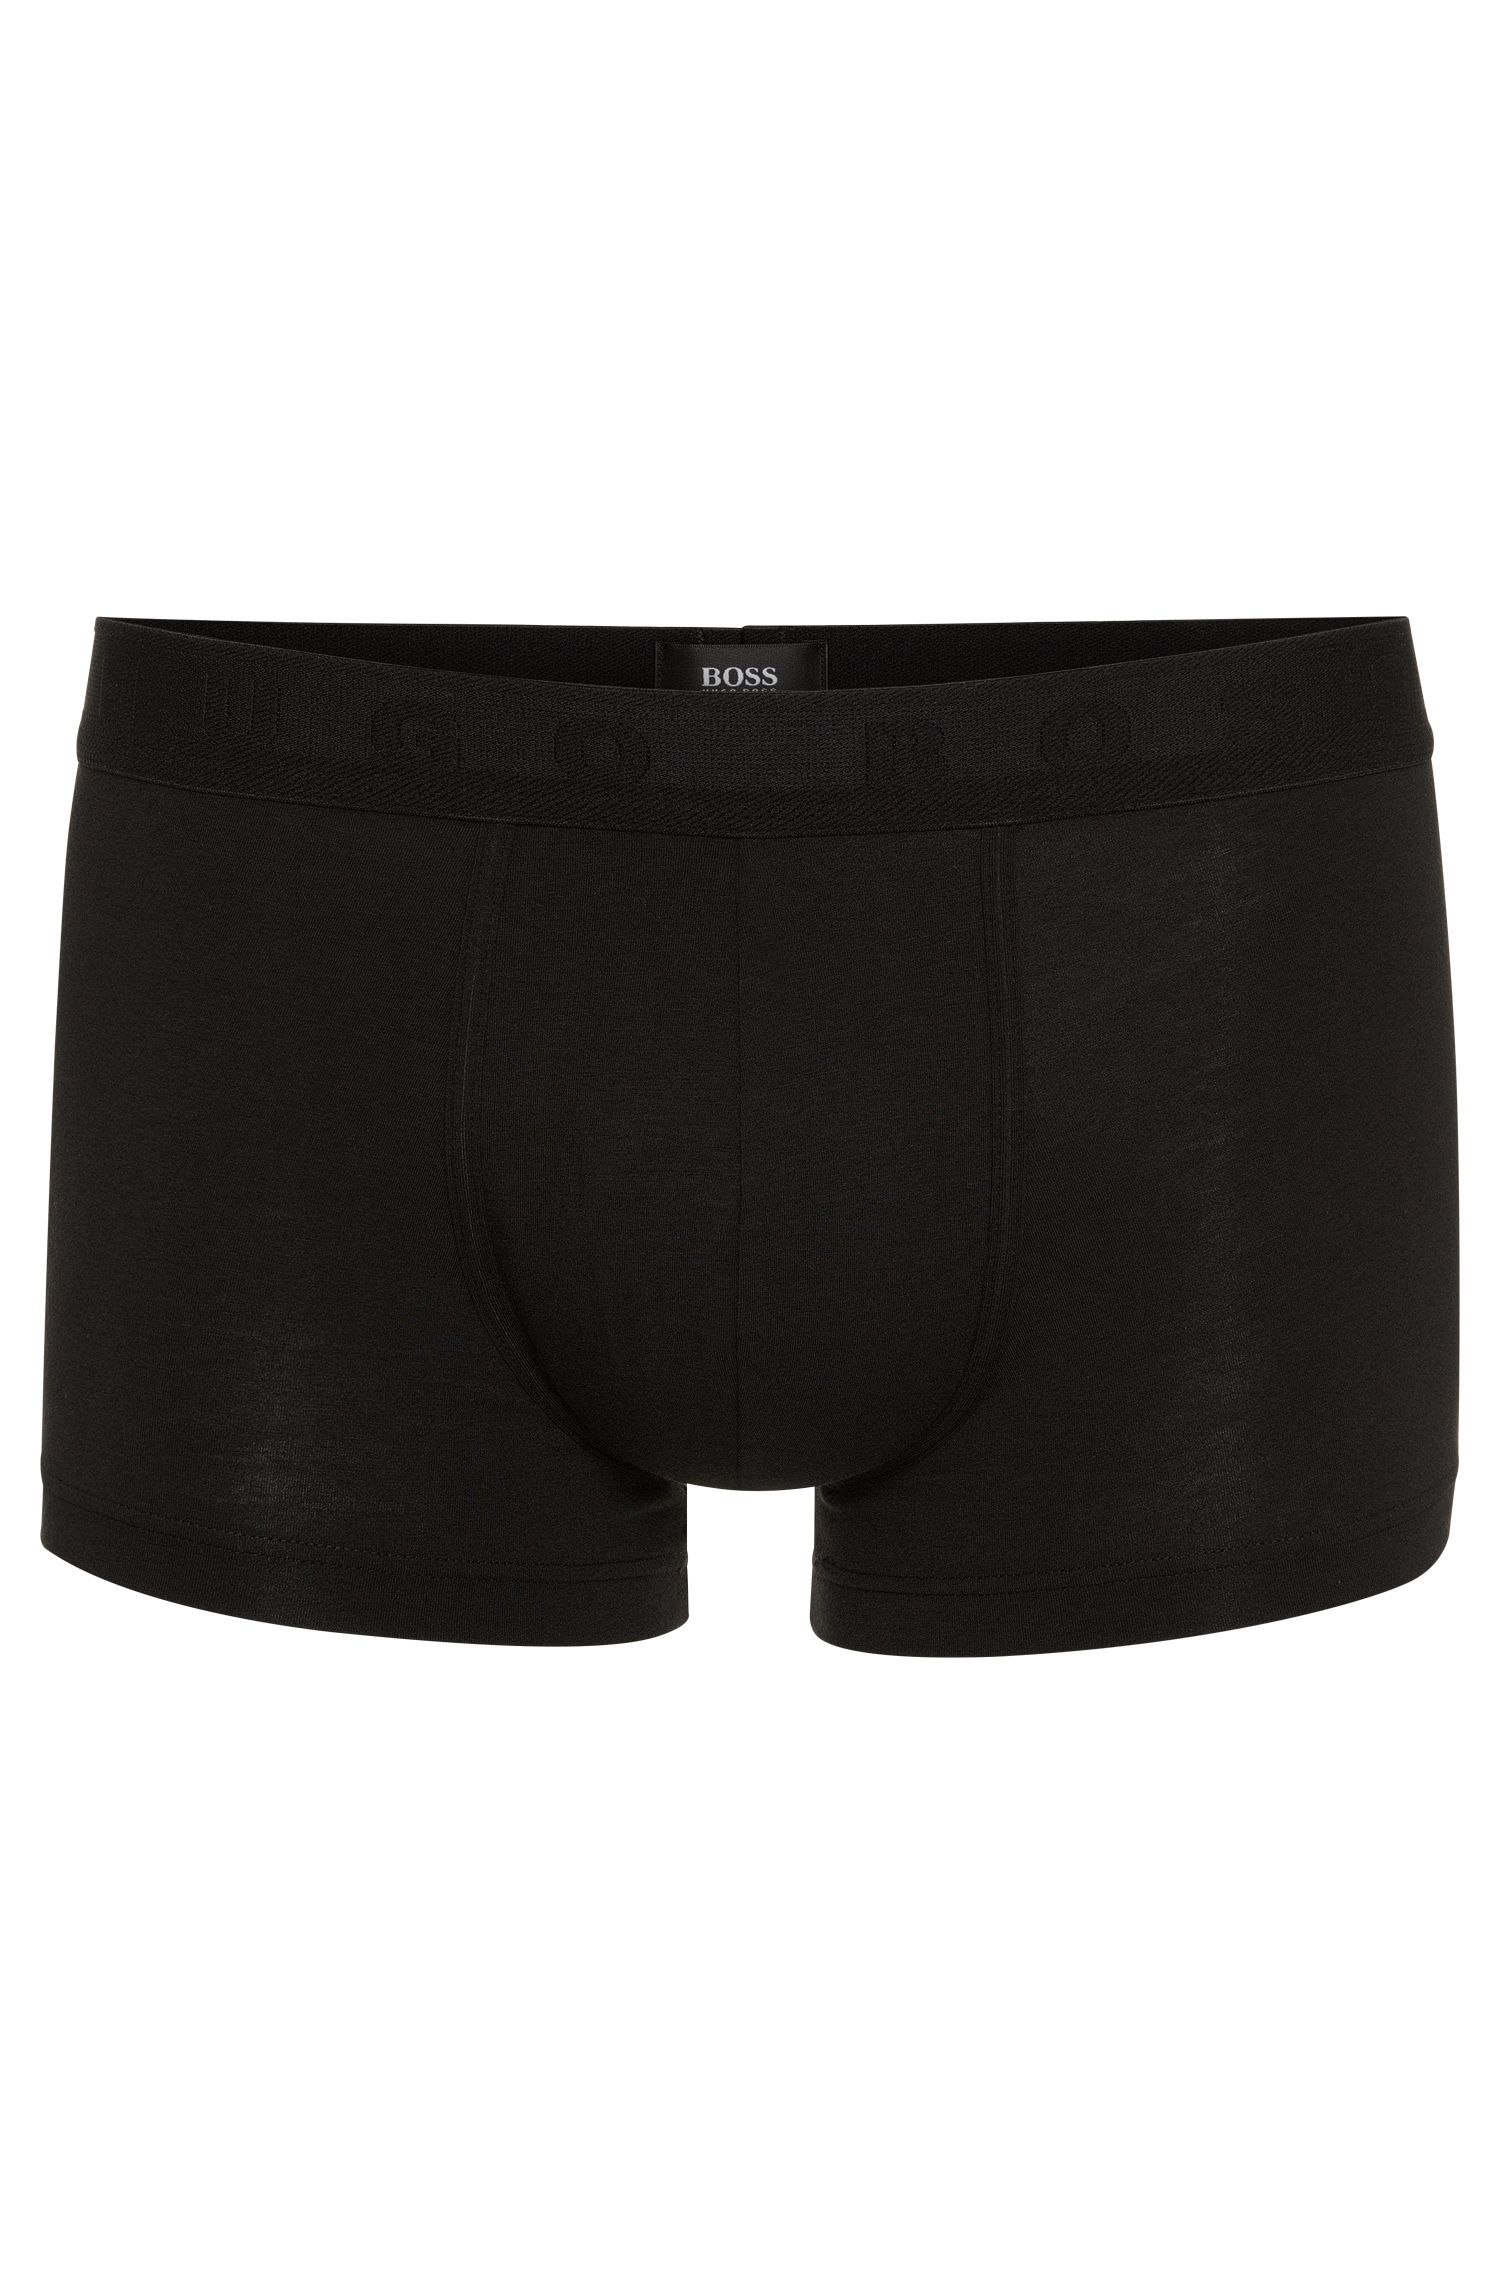 Regular-rise boxers in stretch jersey, Black